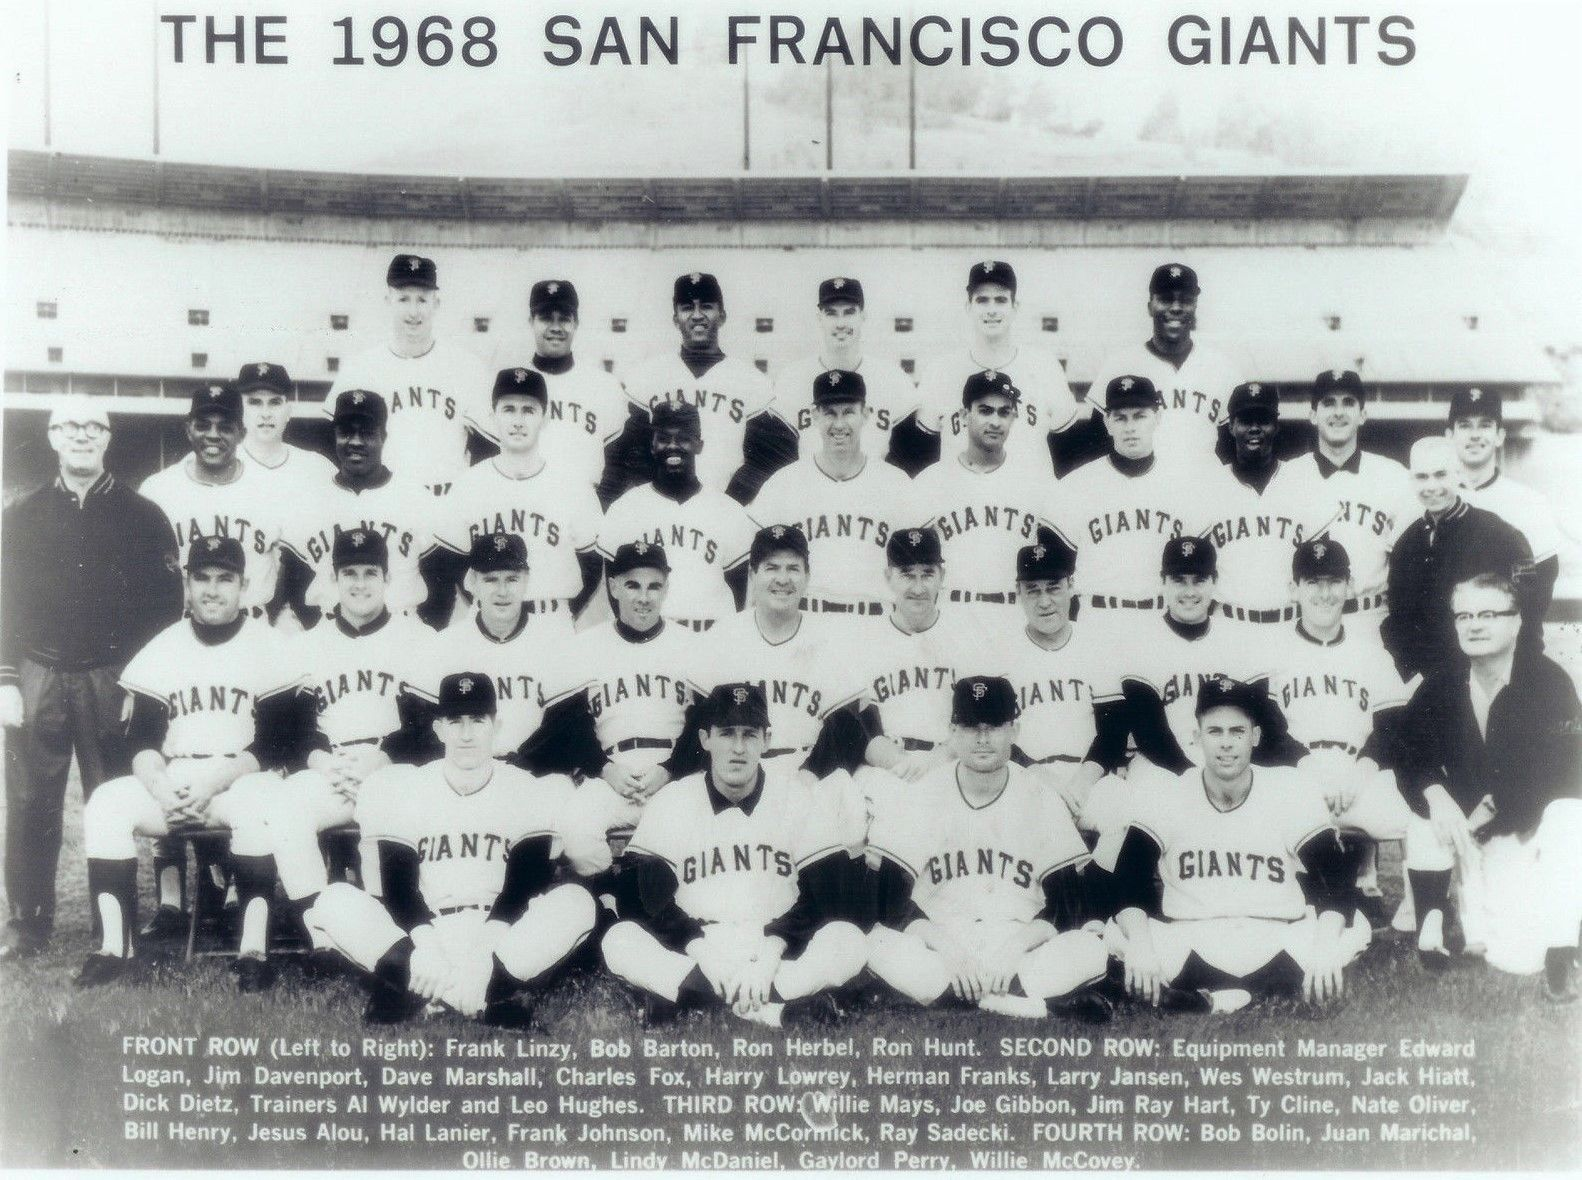 1968 SAN FRANCISCO GIANTS 8X10 TEAM PHOTO BASEBALL PICTURE MLB B/W